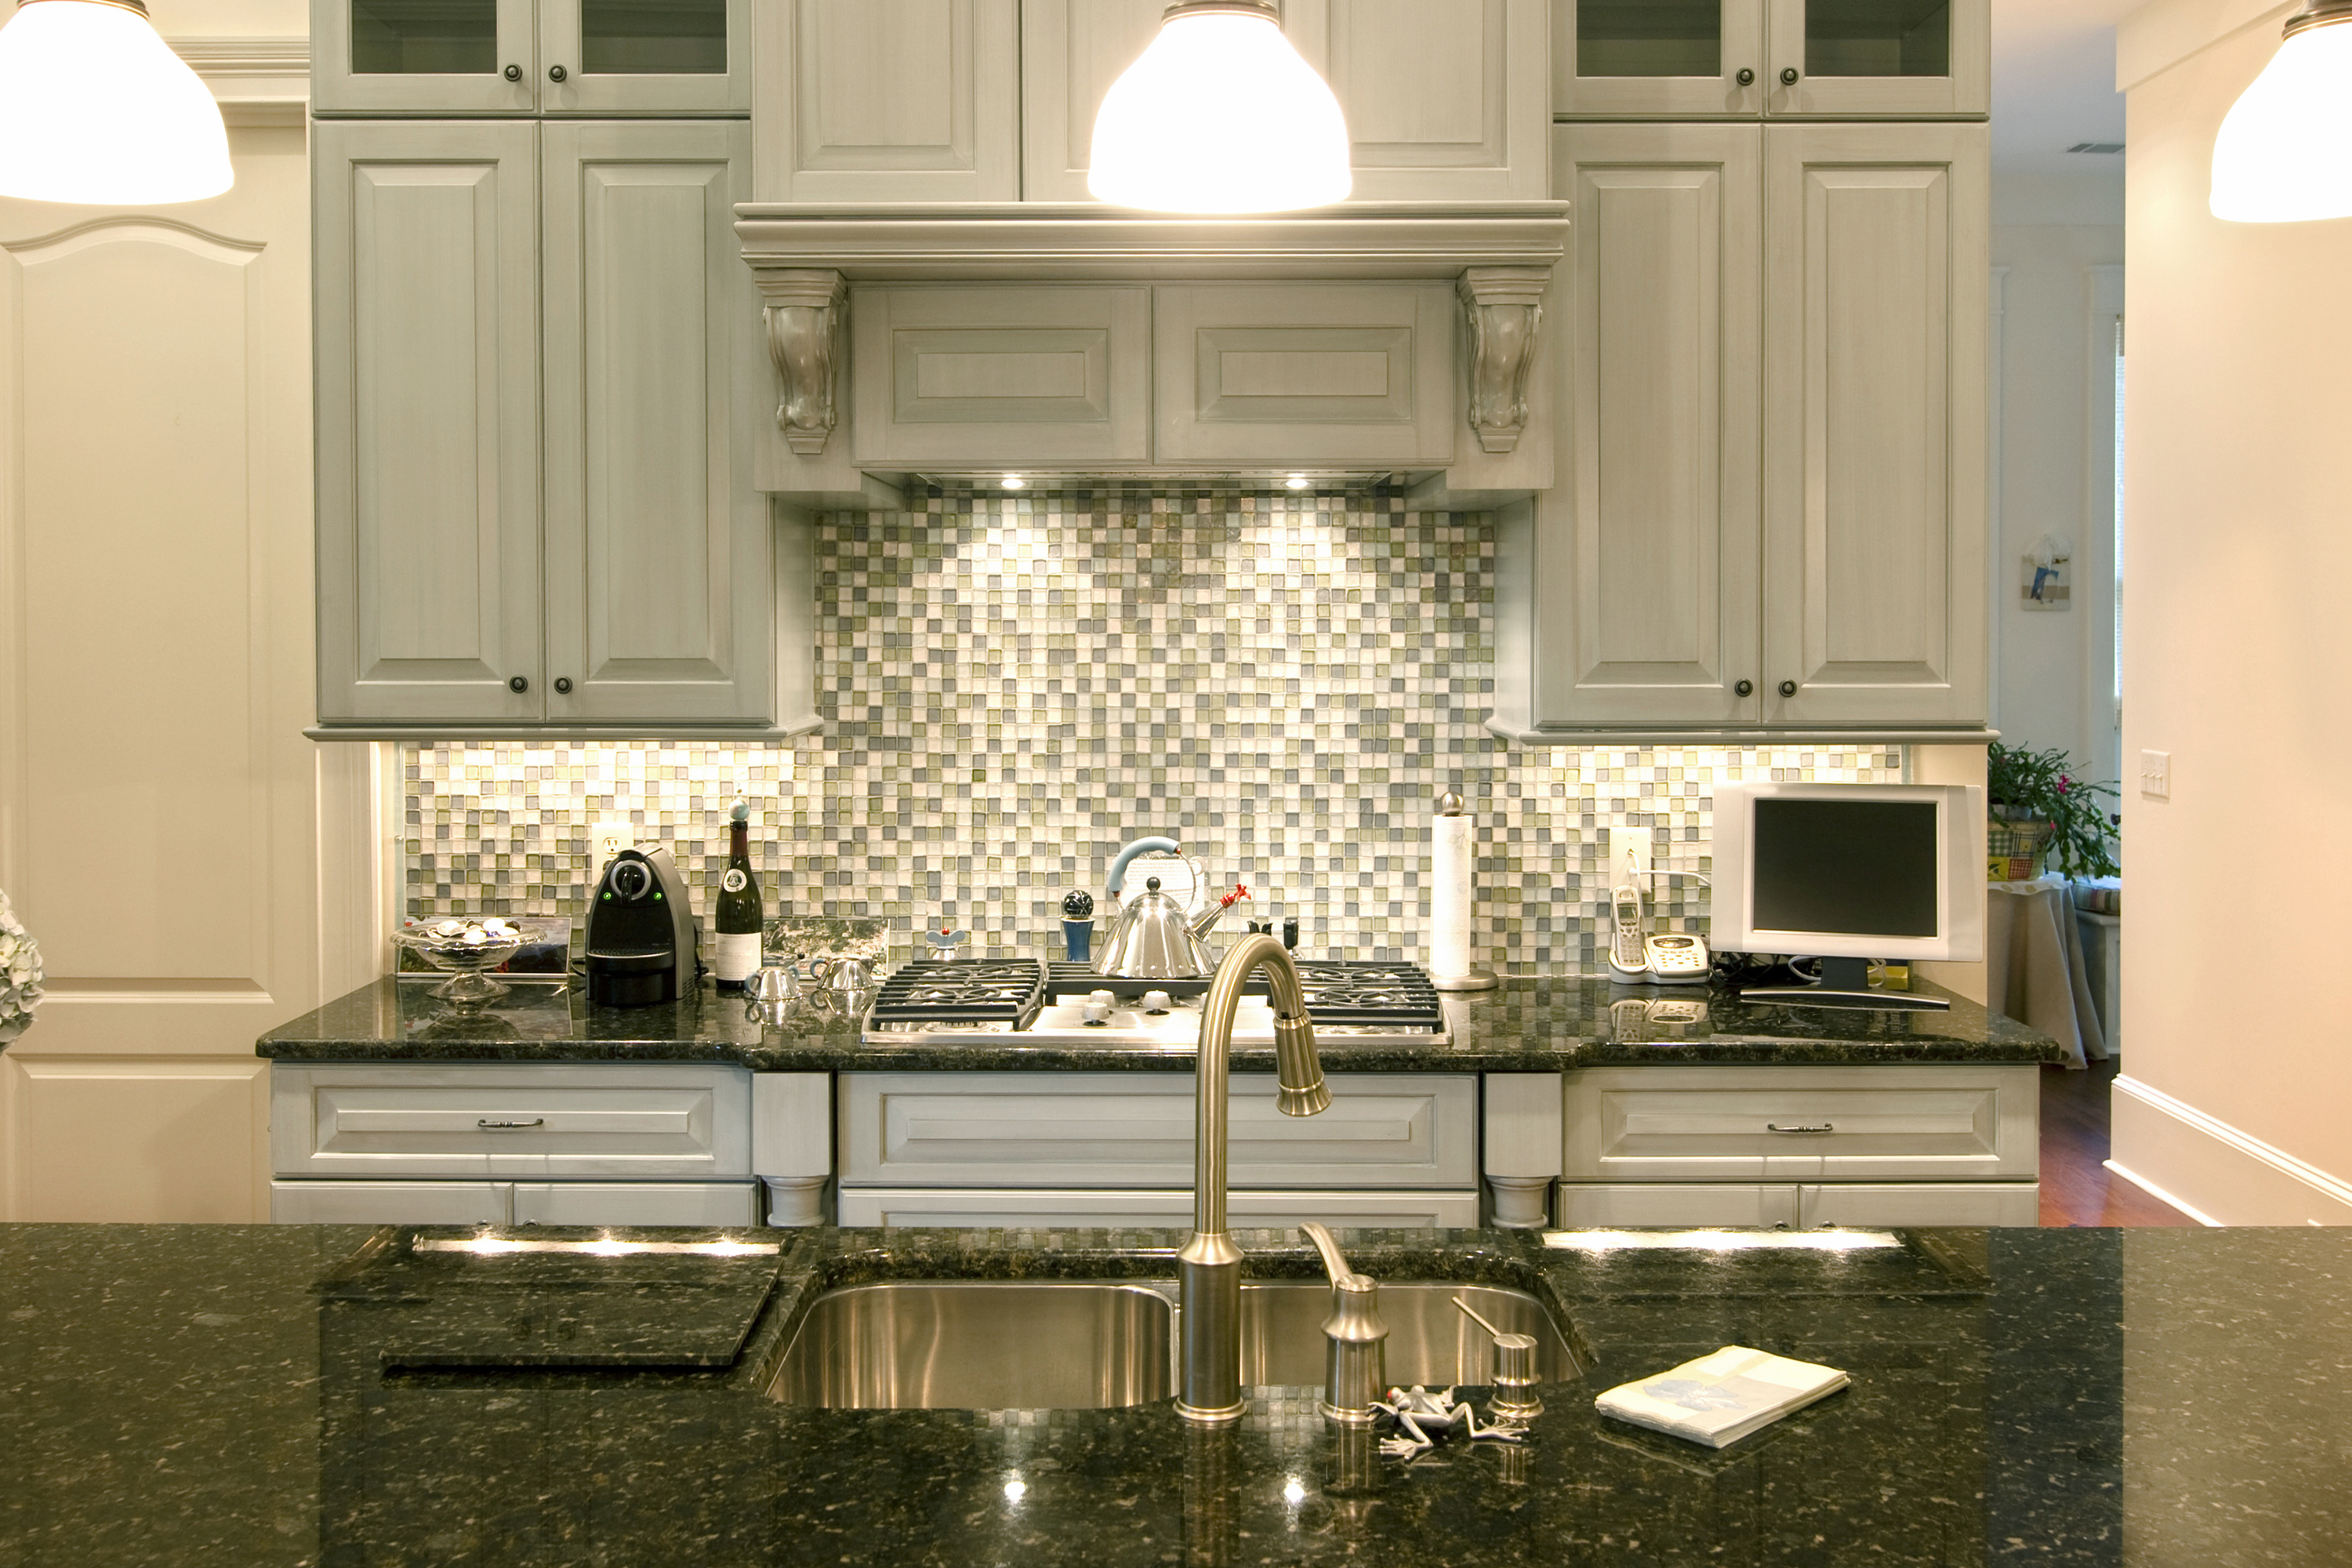 The best backsplash ideas for black granite countertops Black kitchen cabinets ideas